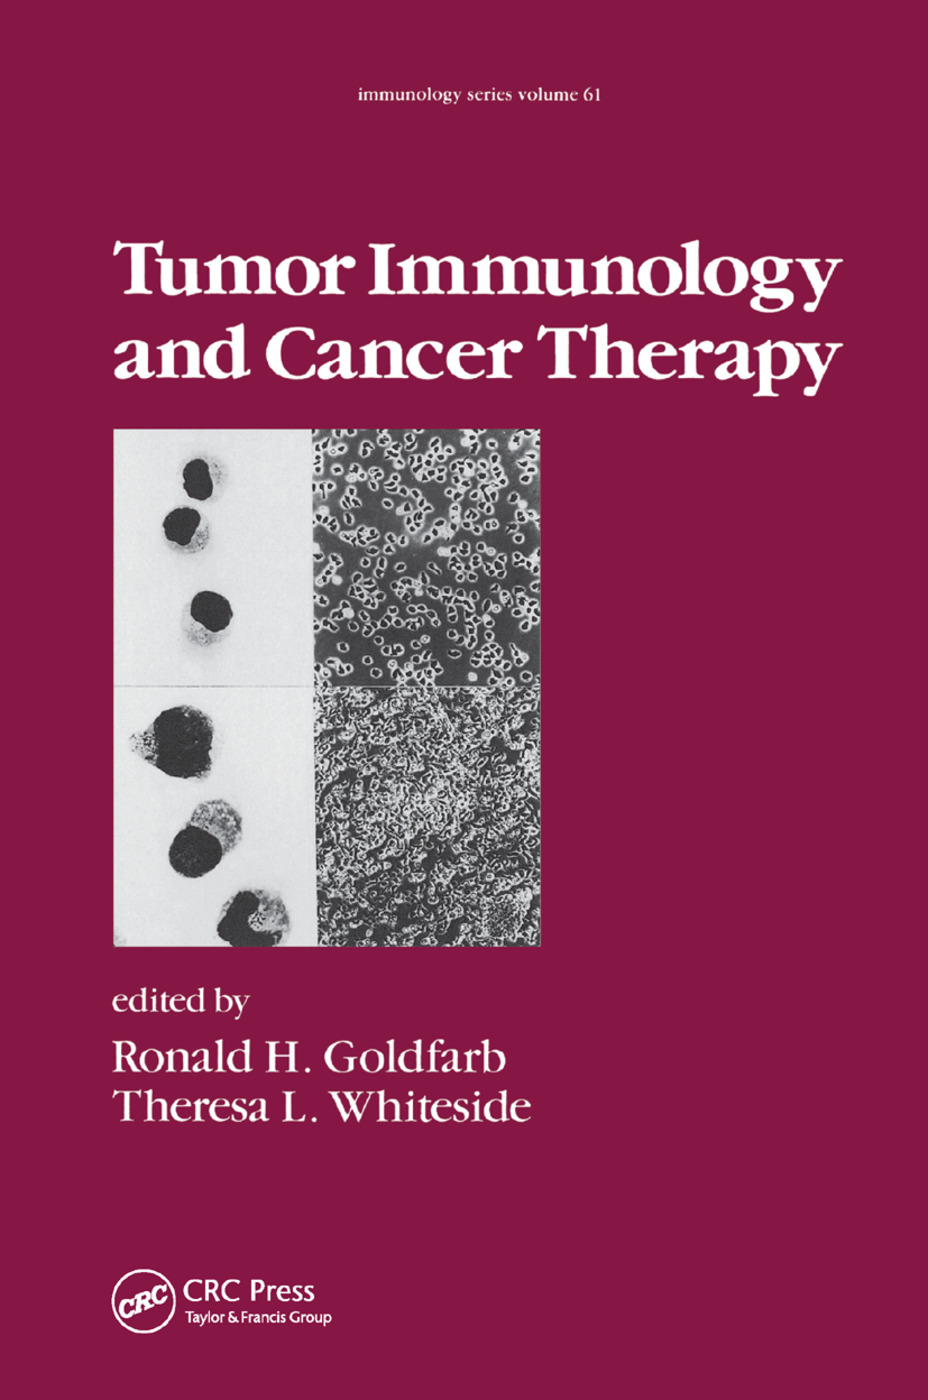 Tumor Immunology and Cancer Therapy